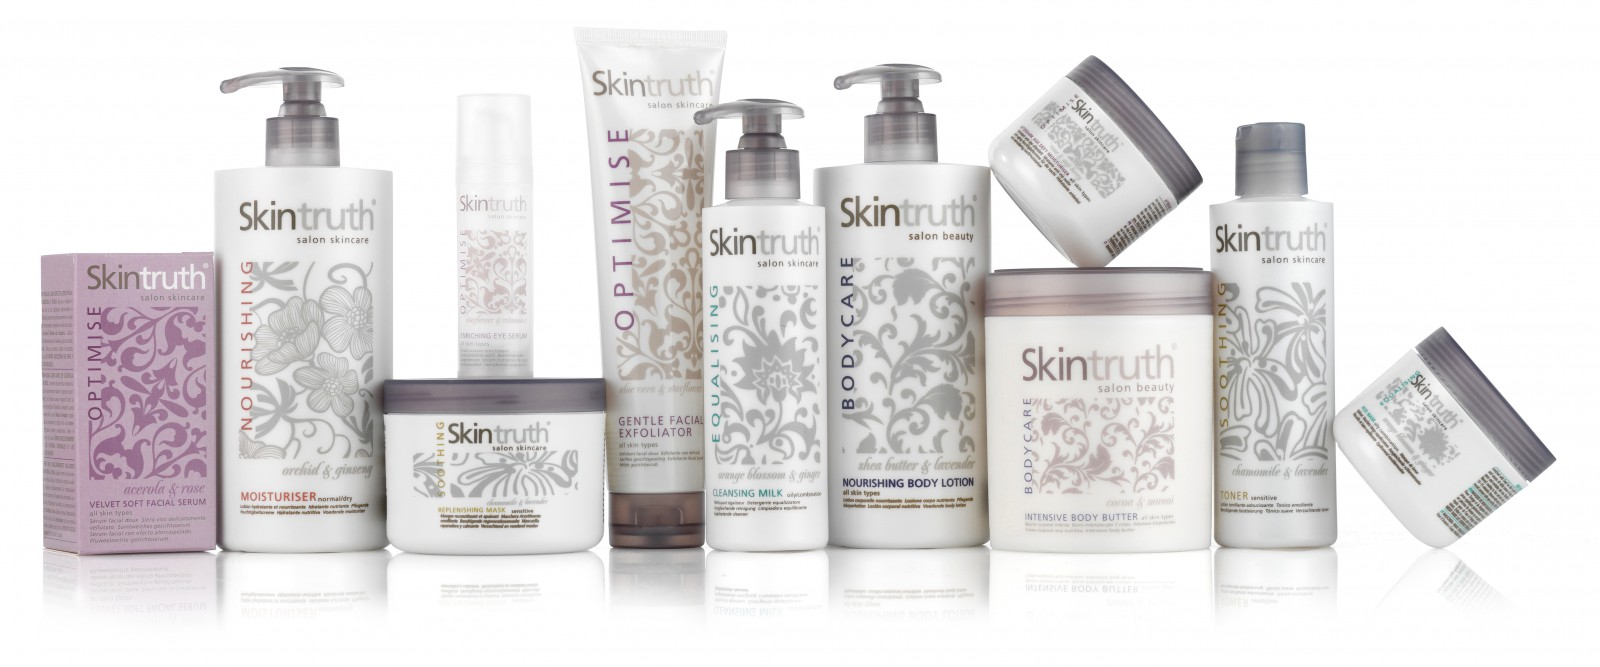 Skintruth The Products In Action